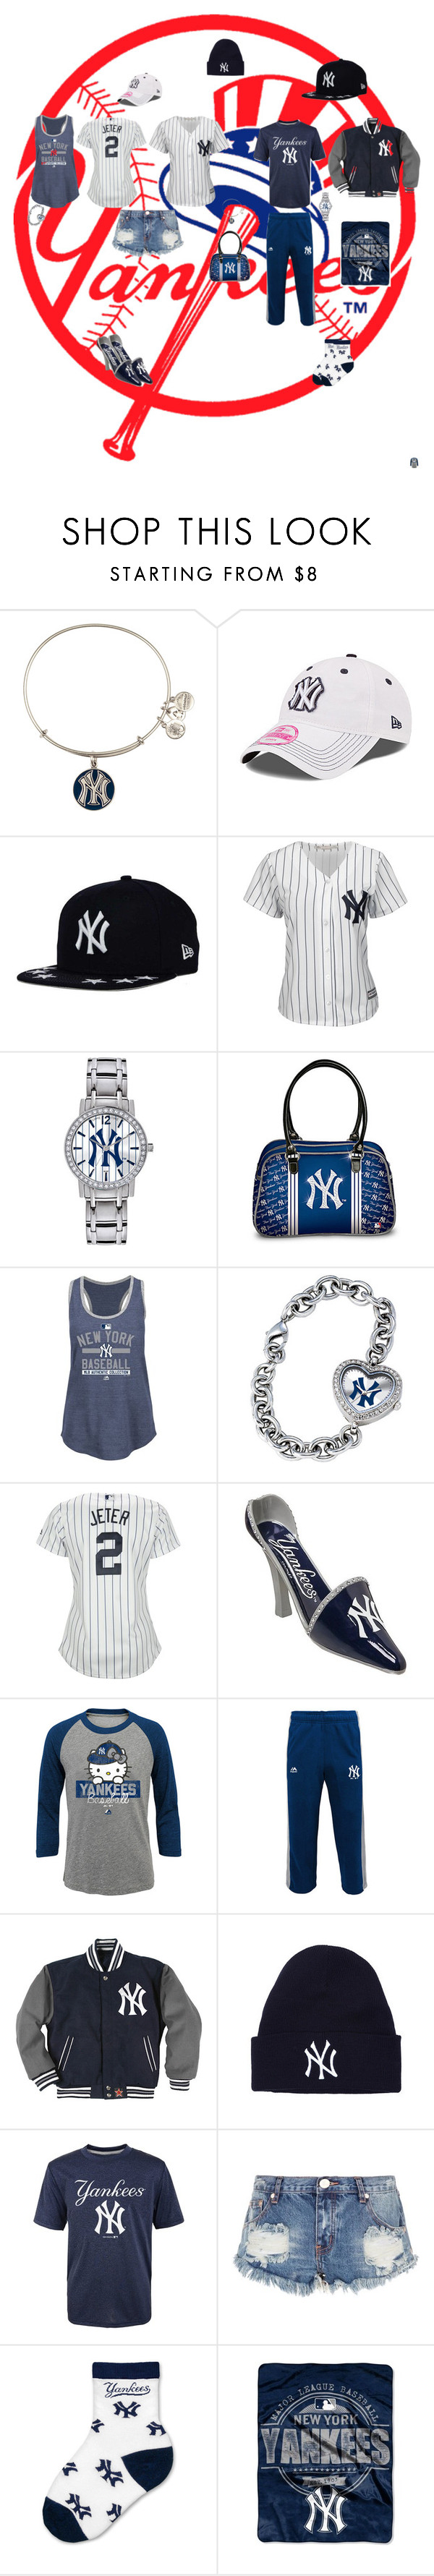 """Yankees"" by jenabbyreid on Polyvore featuring Alex and Ani, Majestic, Game Time, The Bradford Exchange, Hello Kitty, One Teaspoon and The Northwest Company"